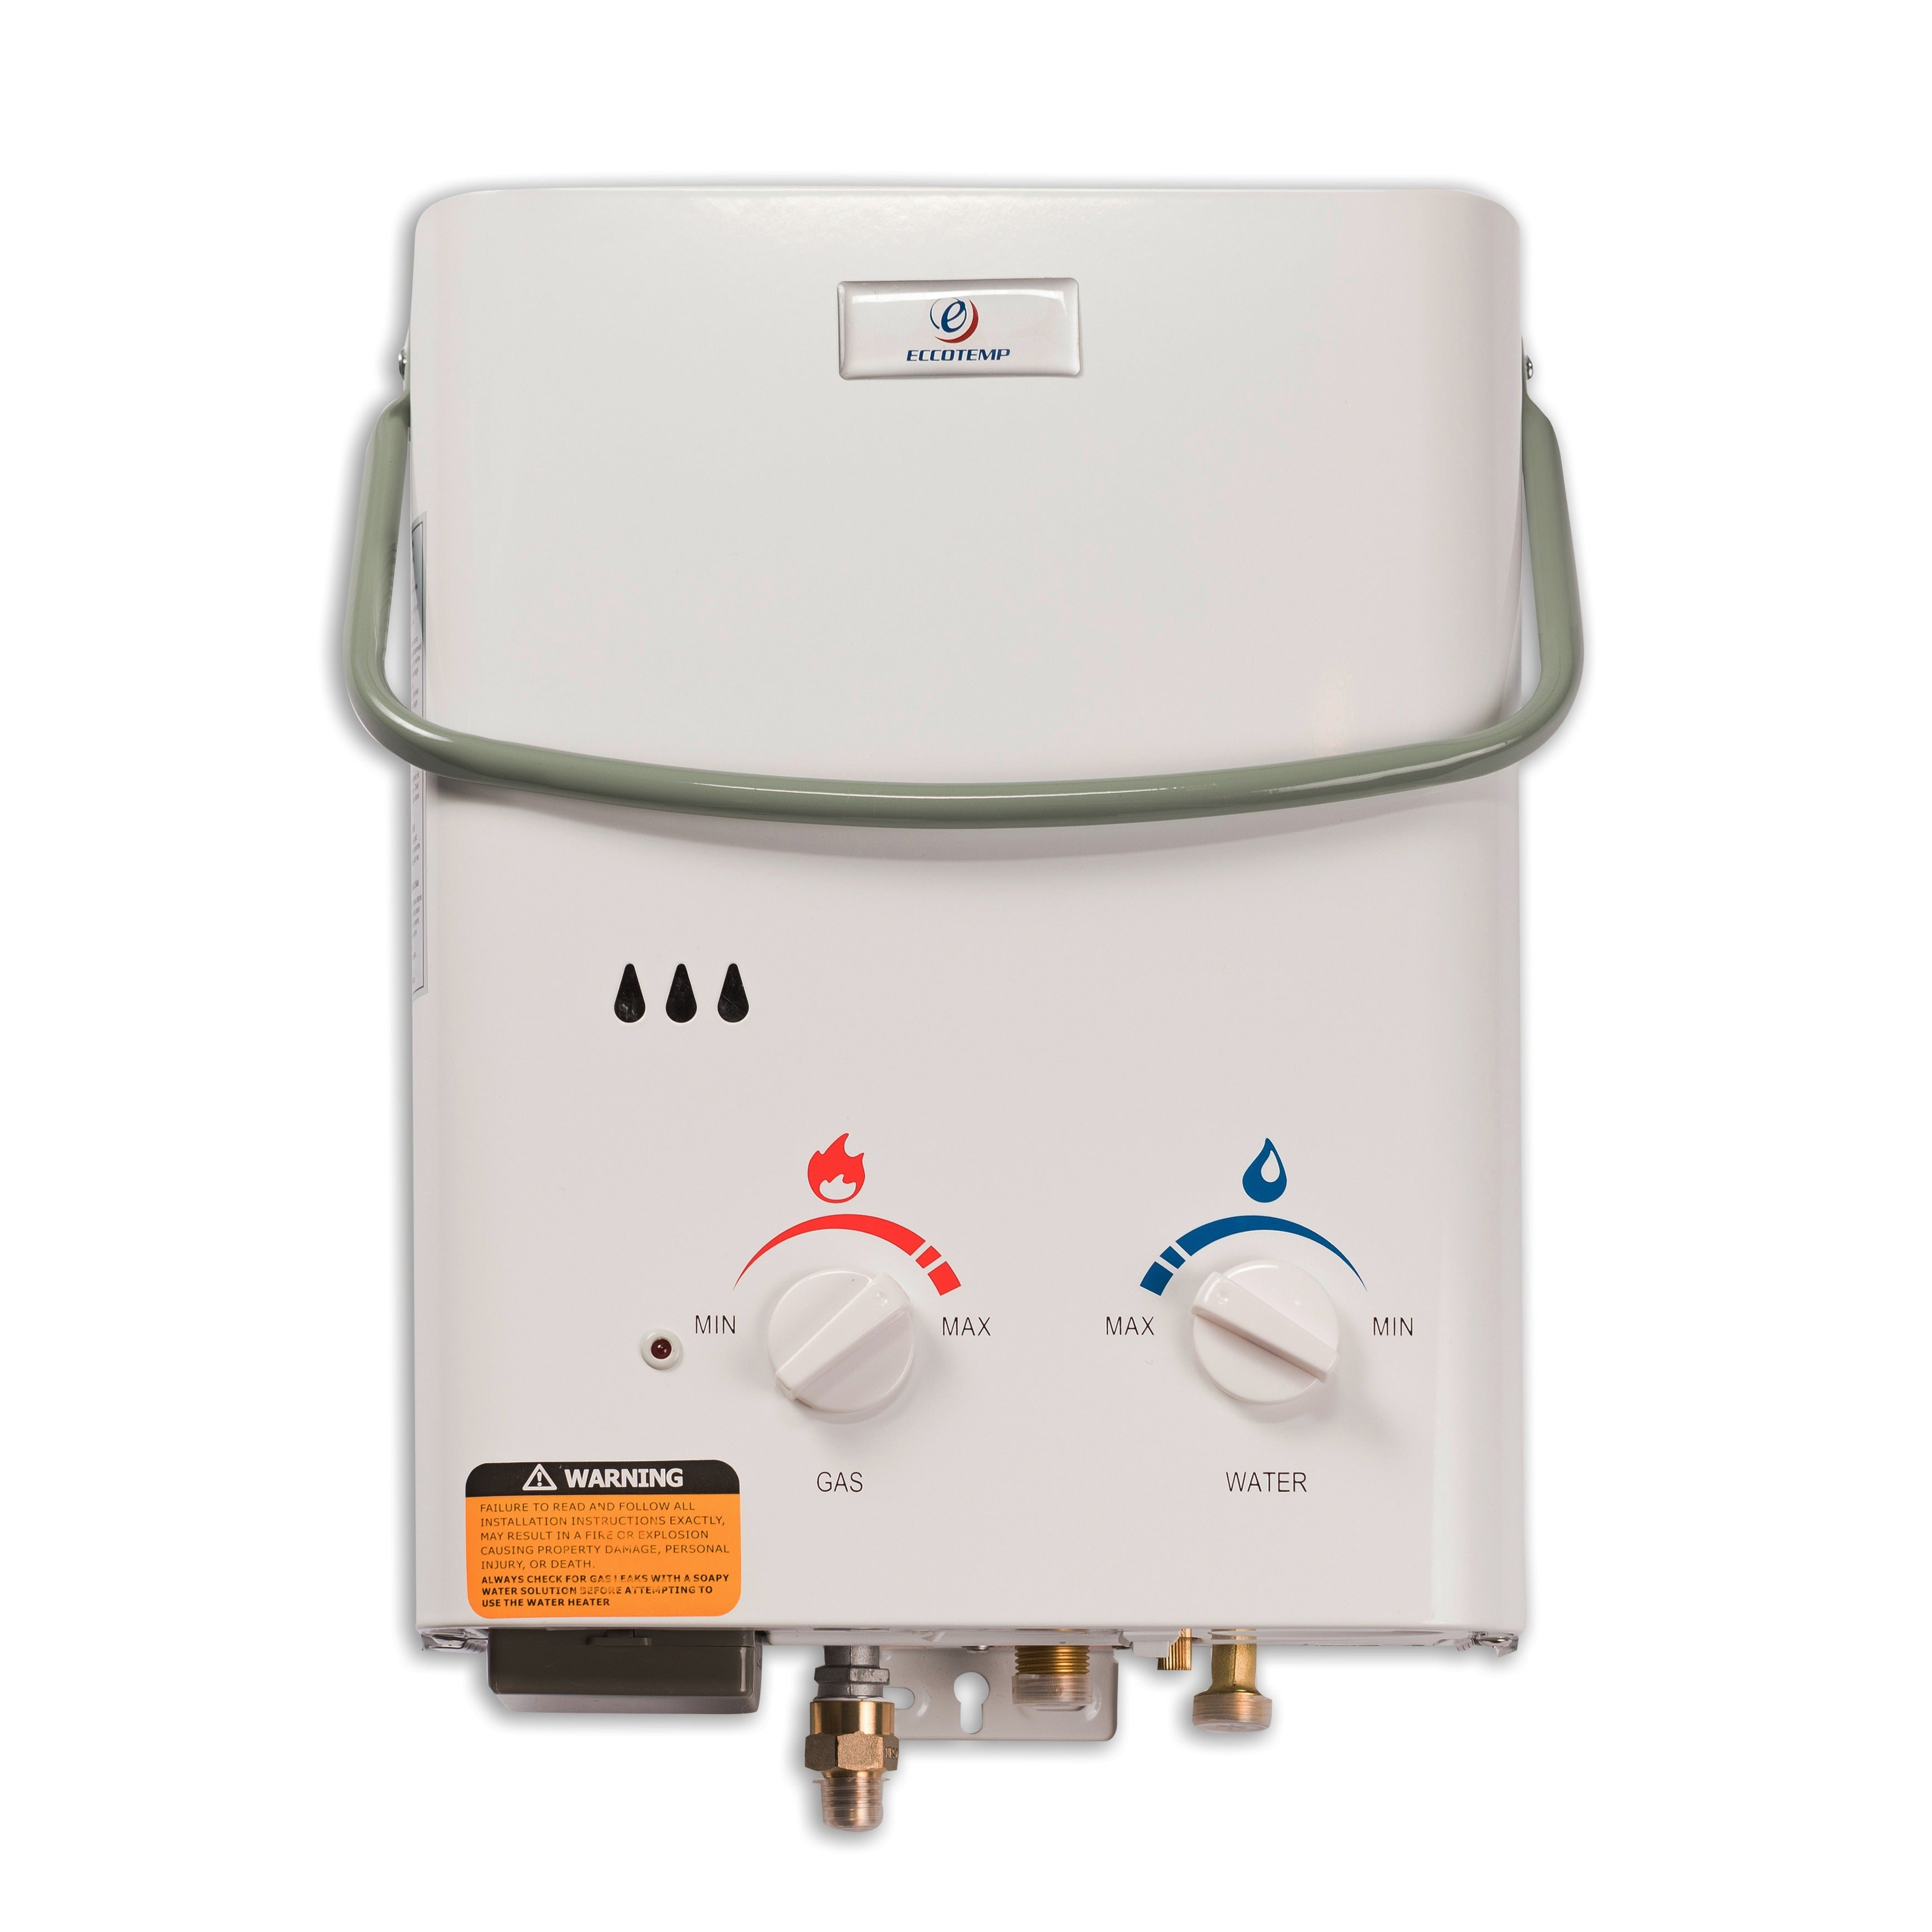 Eccotemp L5 Tankless Water Heater with Flojet Pump and St...